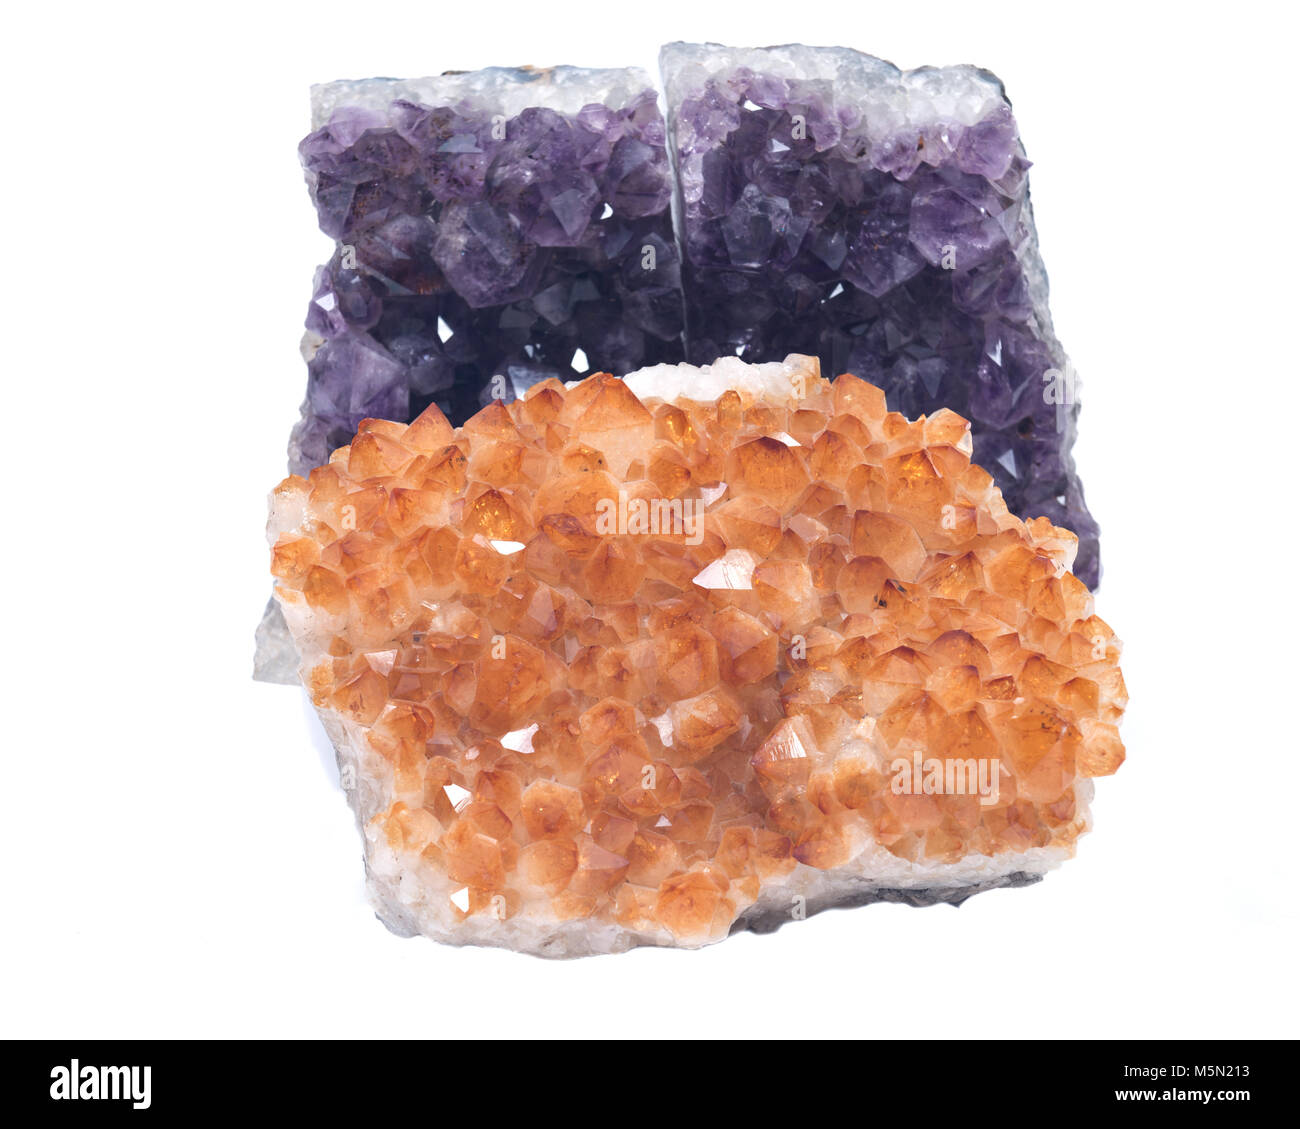 Citrine druzy cluster surrounded by amethyst druzy clusters  isolated on white background - Stock Image